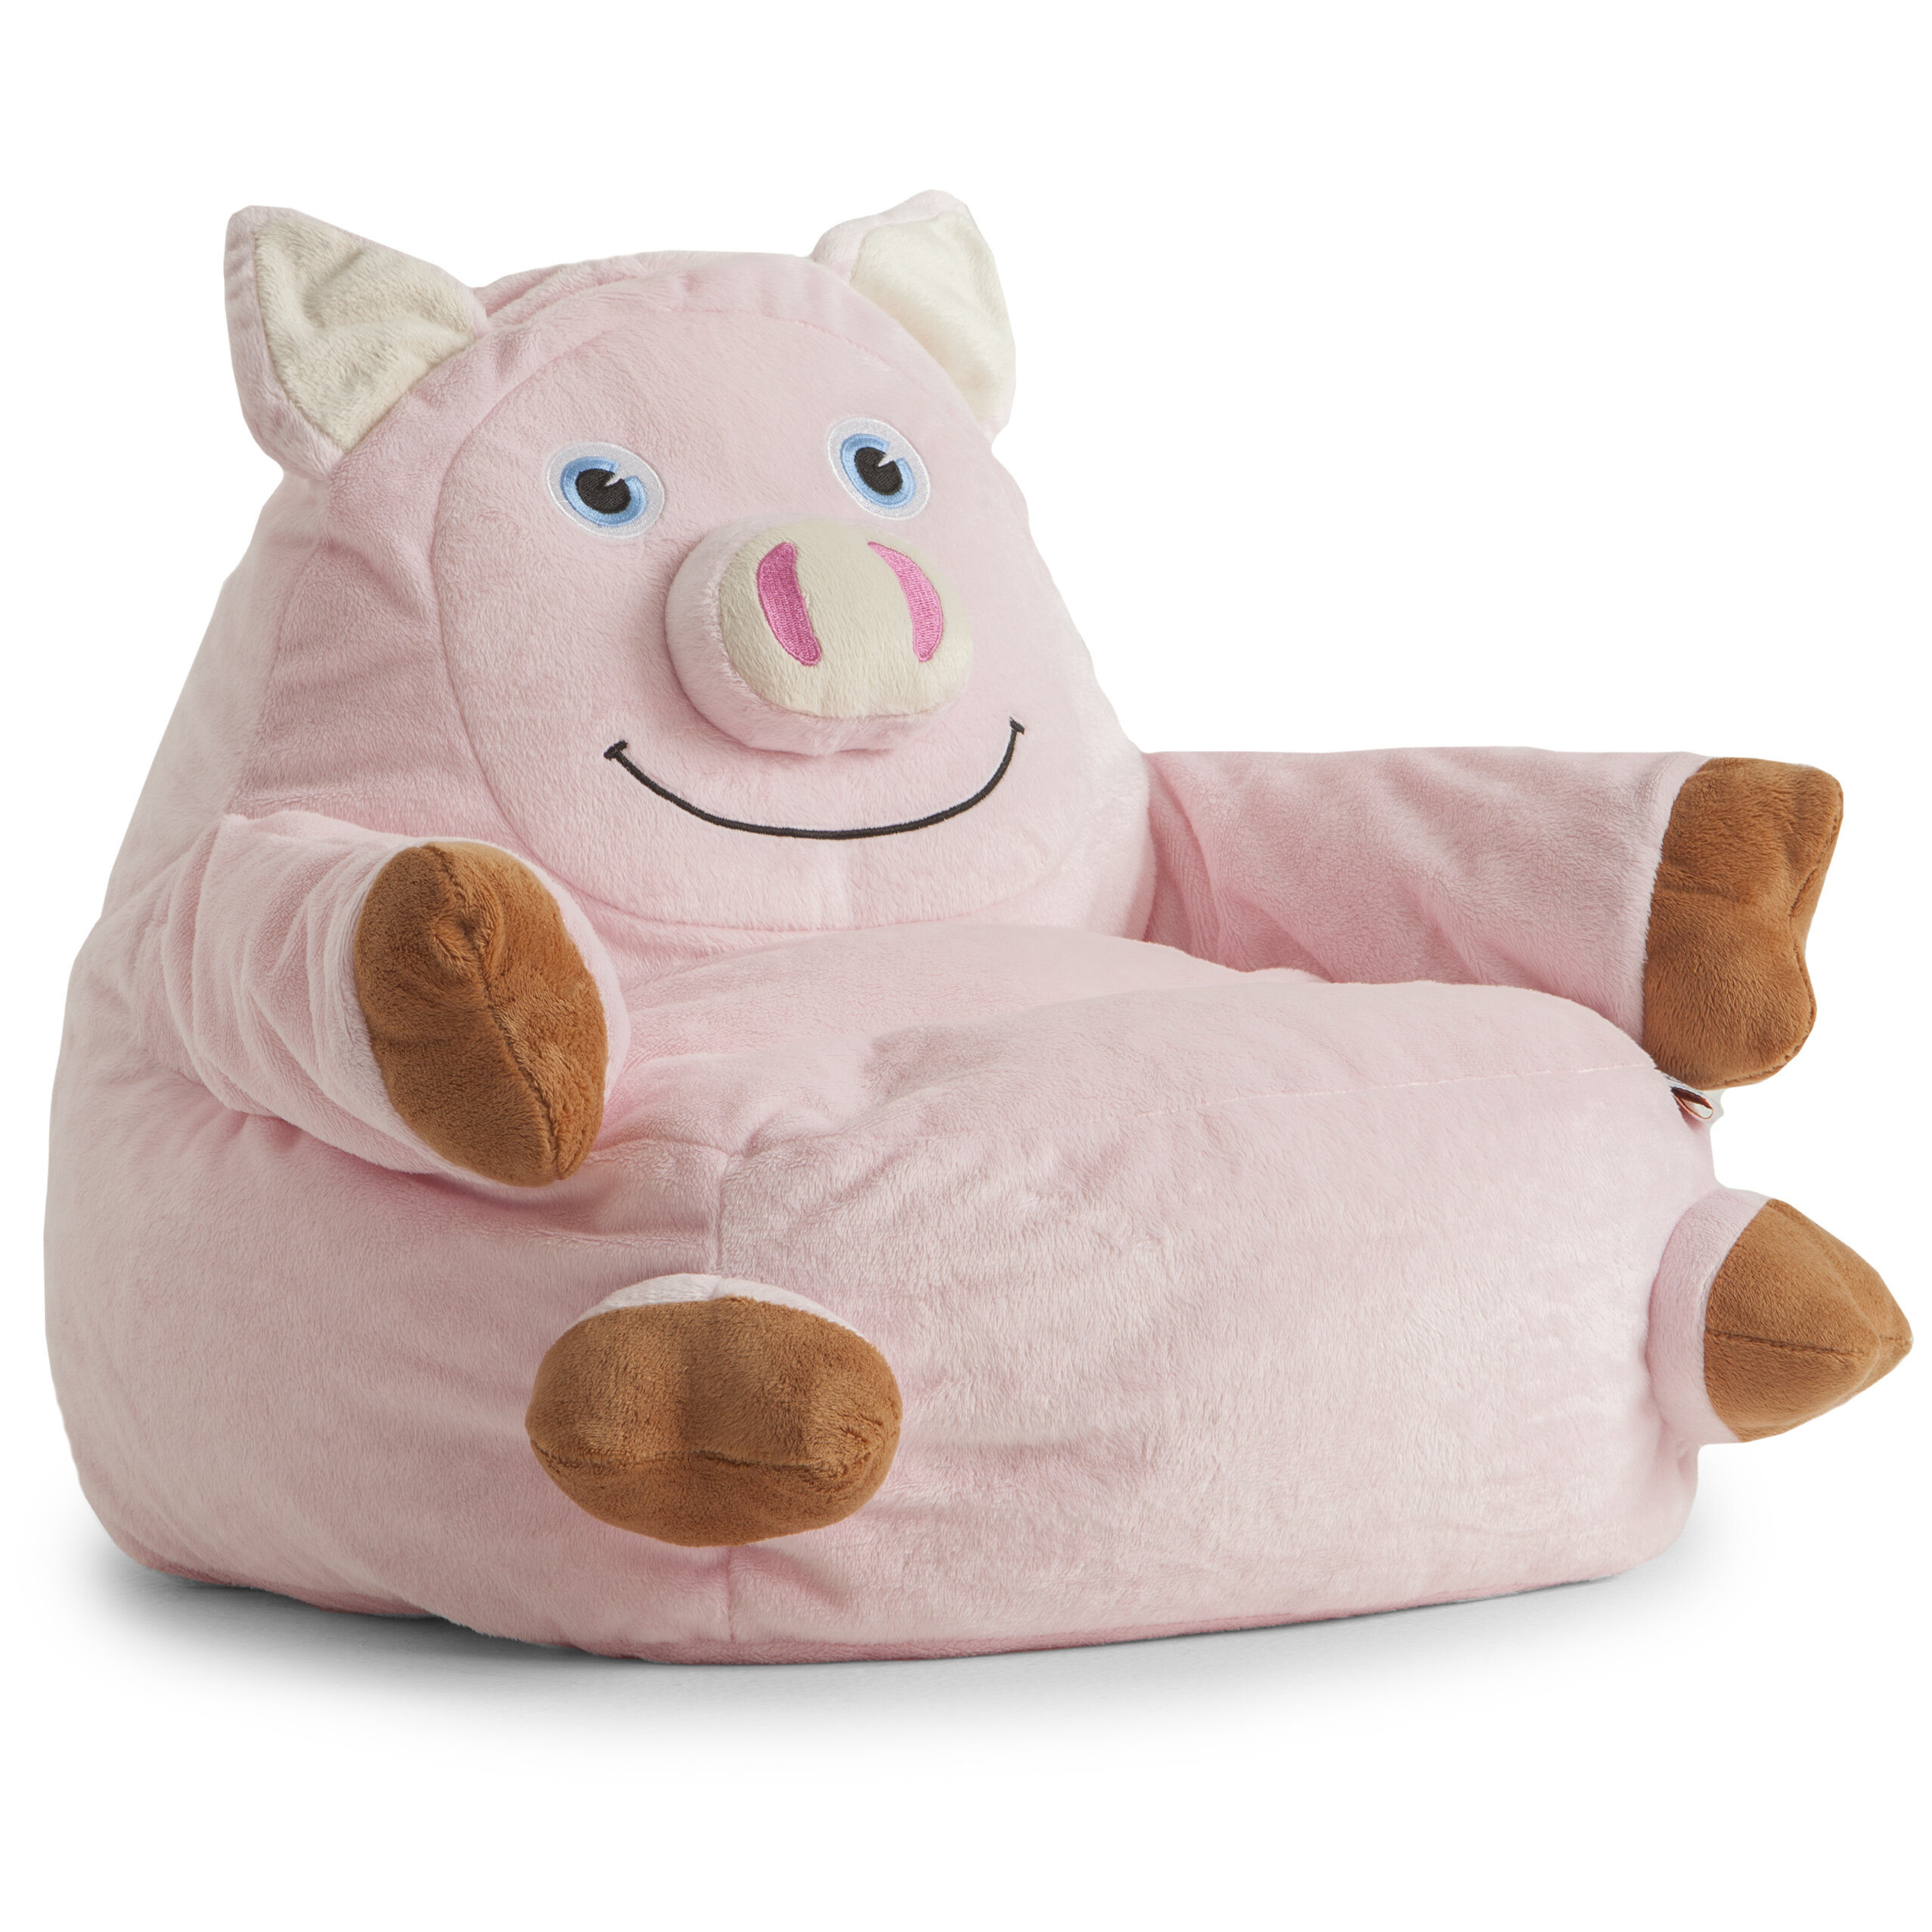 Bagimals Comfort Research Bagimals Arm Chair Bean Bag   Pig, Pink,  Polyester Cover